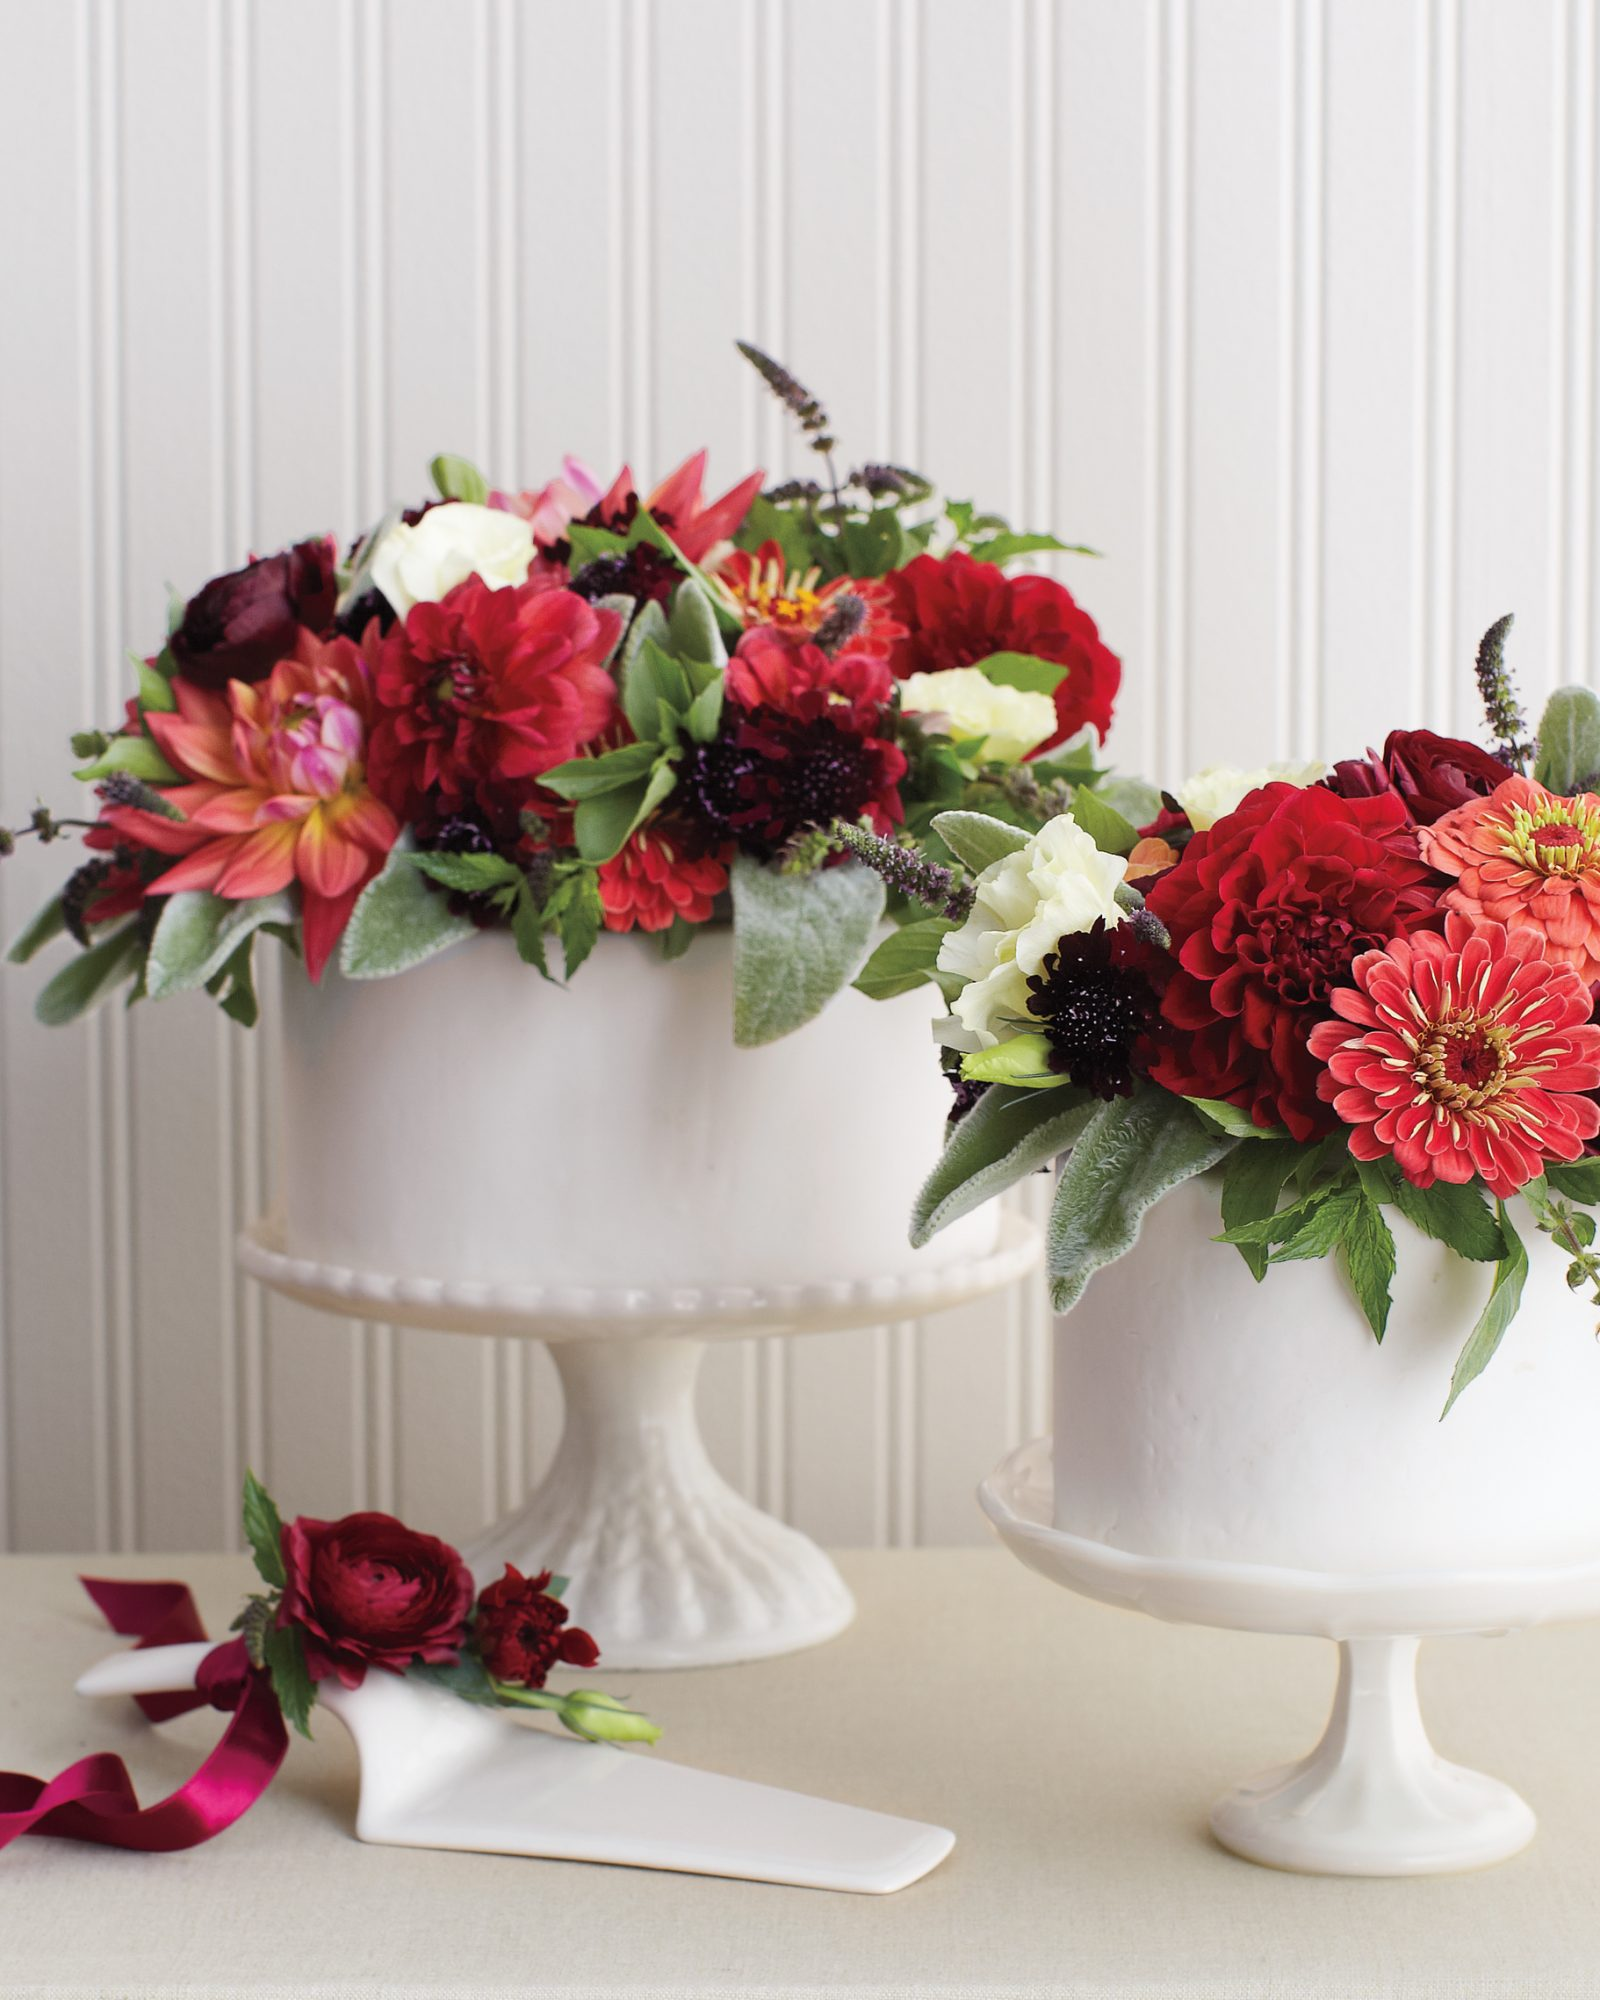 Floral Bouquet-Topped Wedding Cake